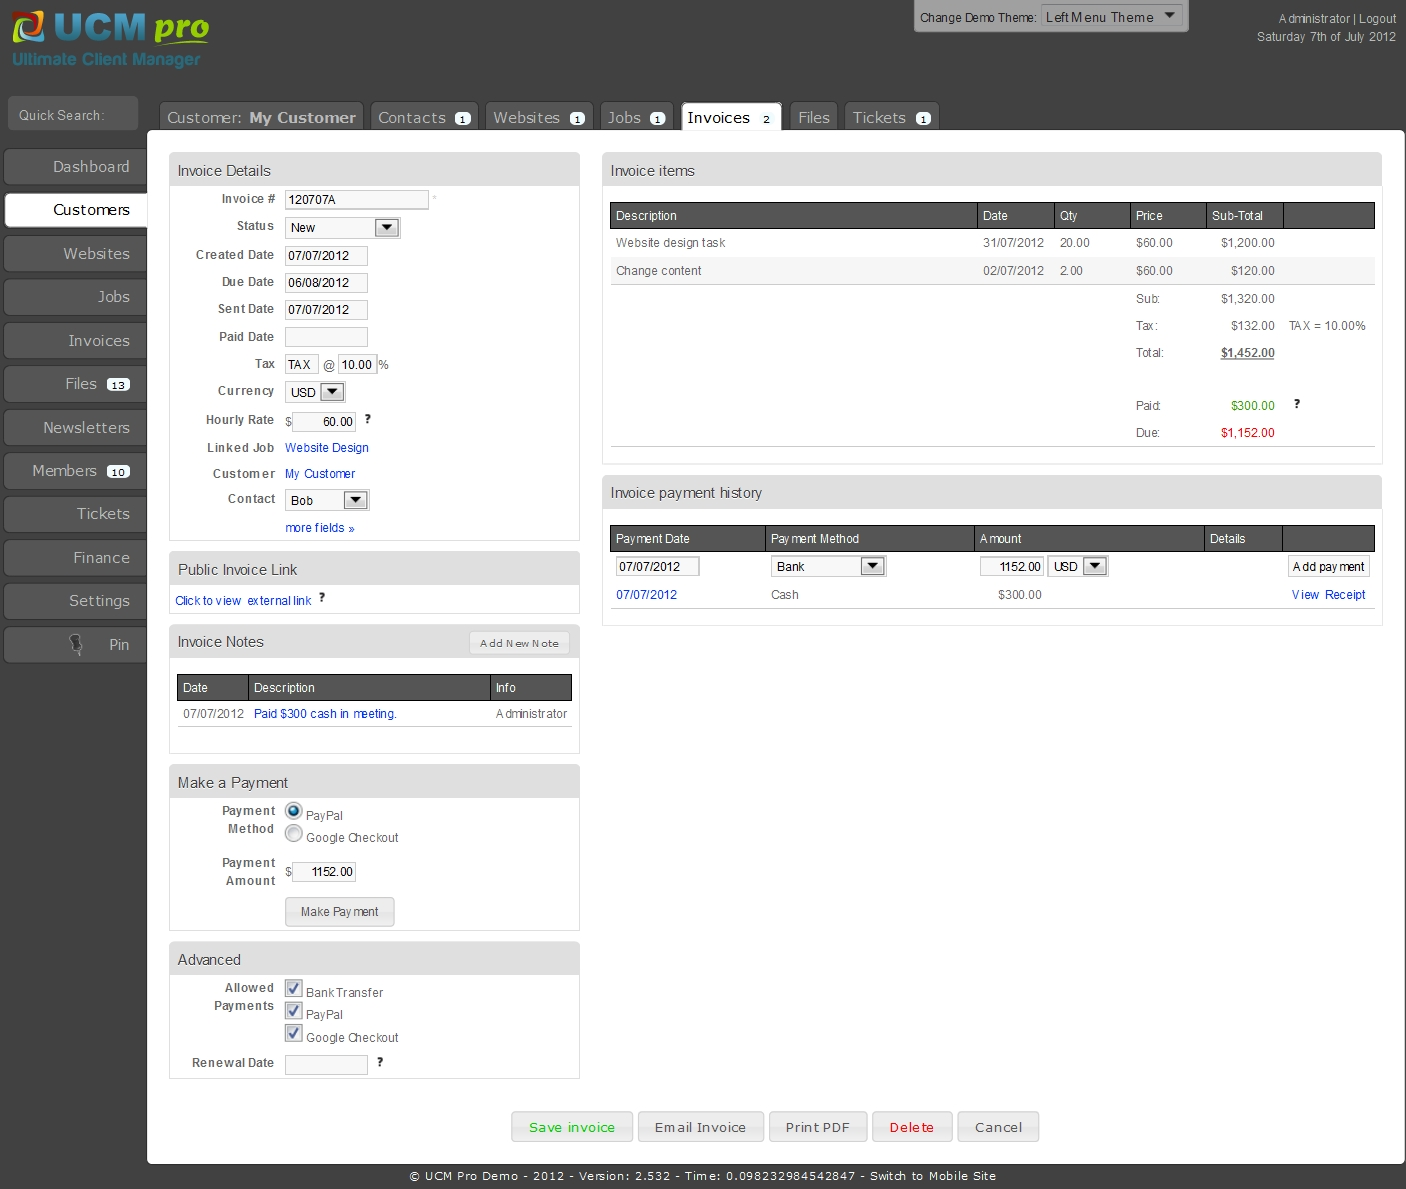 open source invoice php ultimate client manager crm pro edition php scripts 1406 X 1189